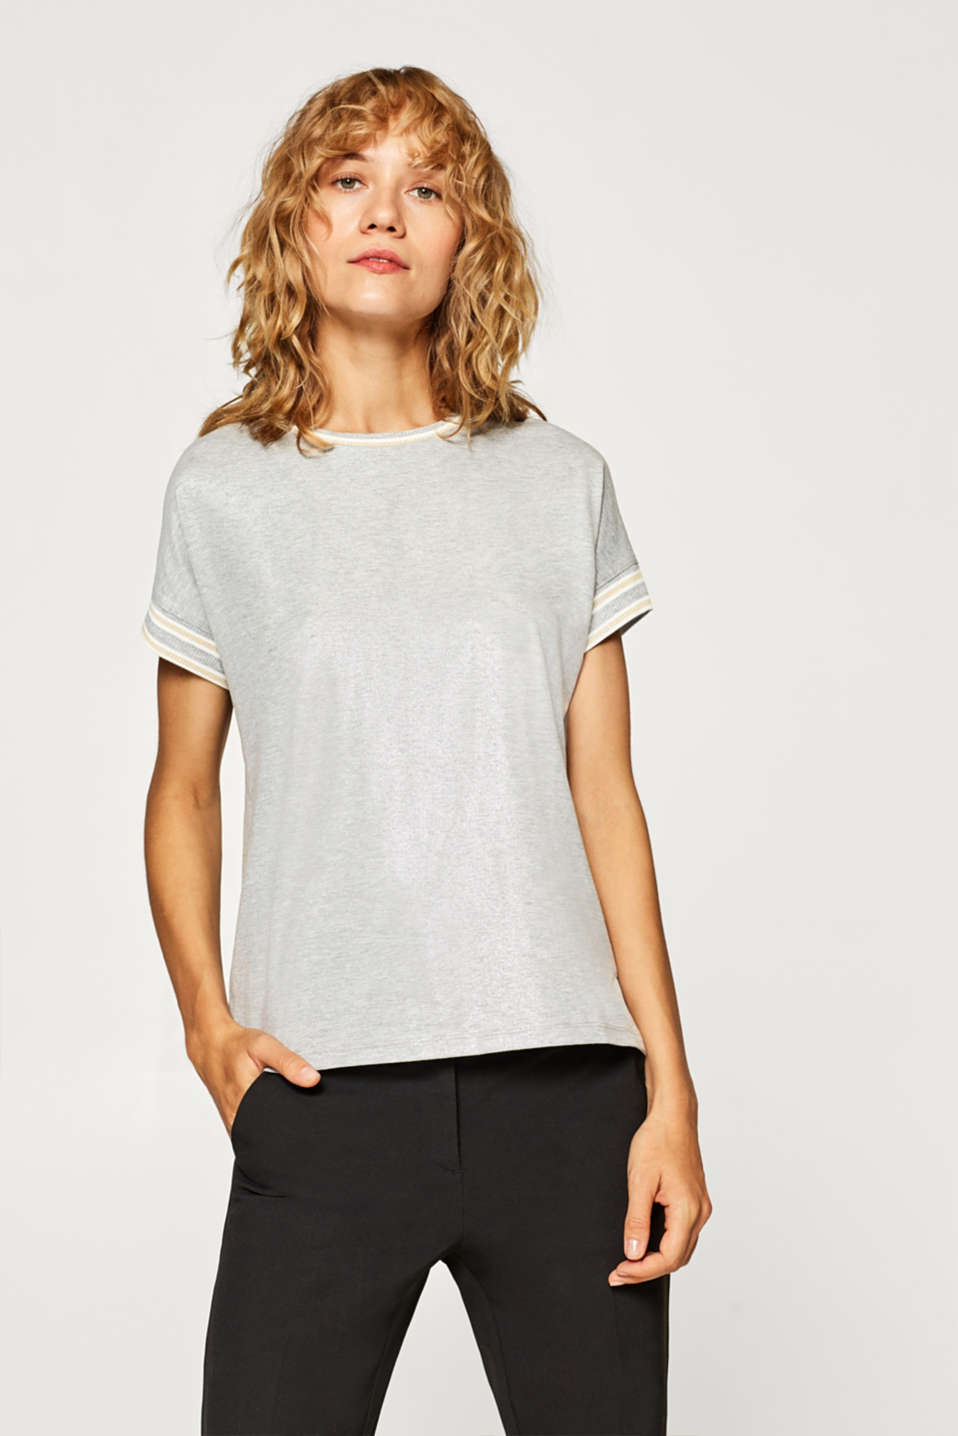 Esprit - Softly shimmering T-shirt with ribbed borders